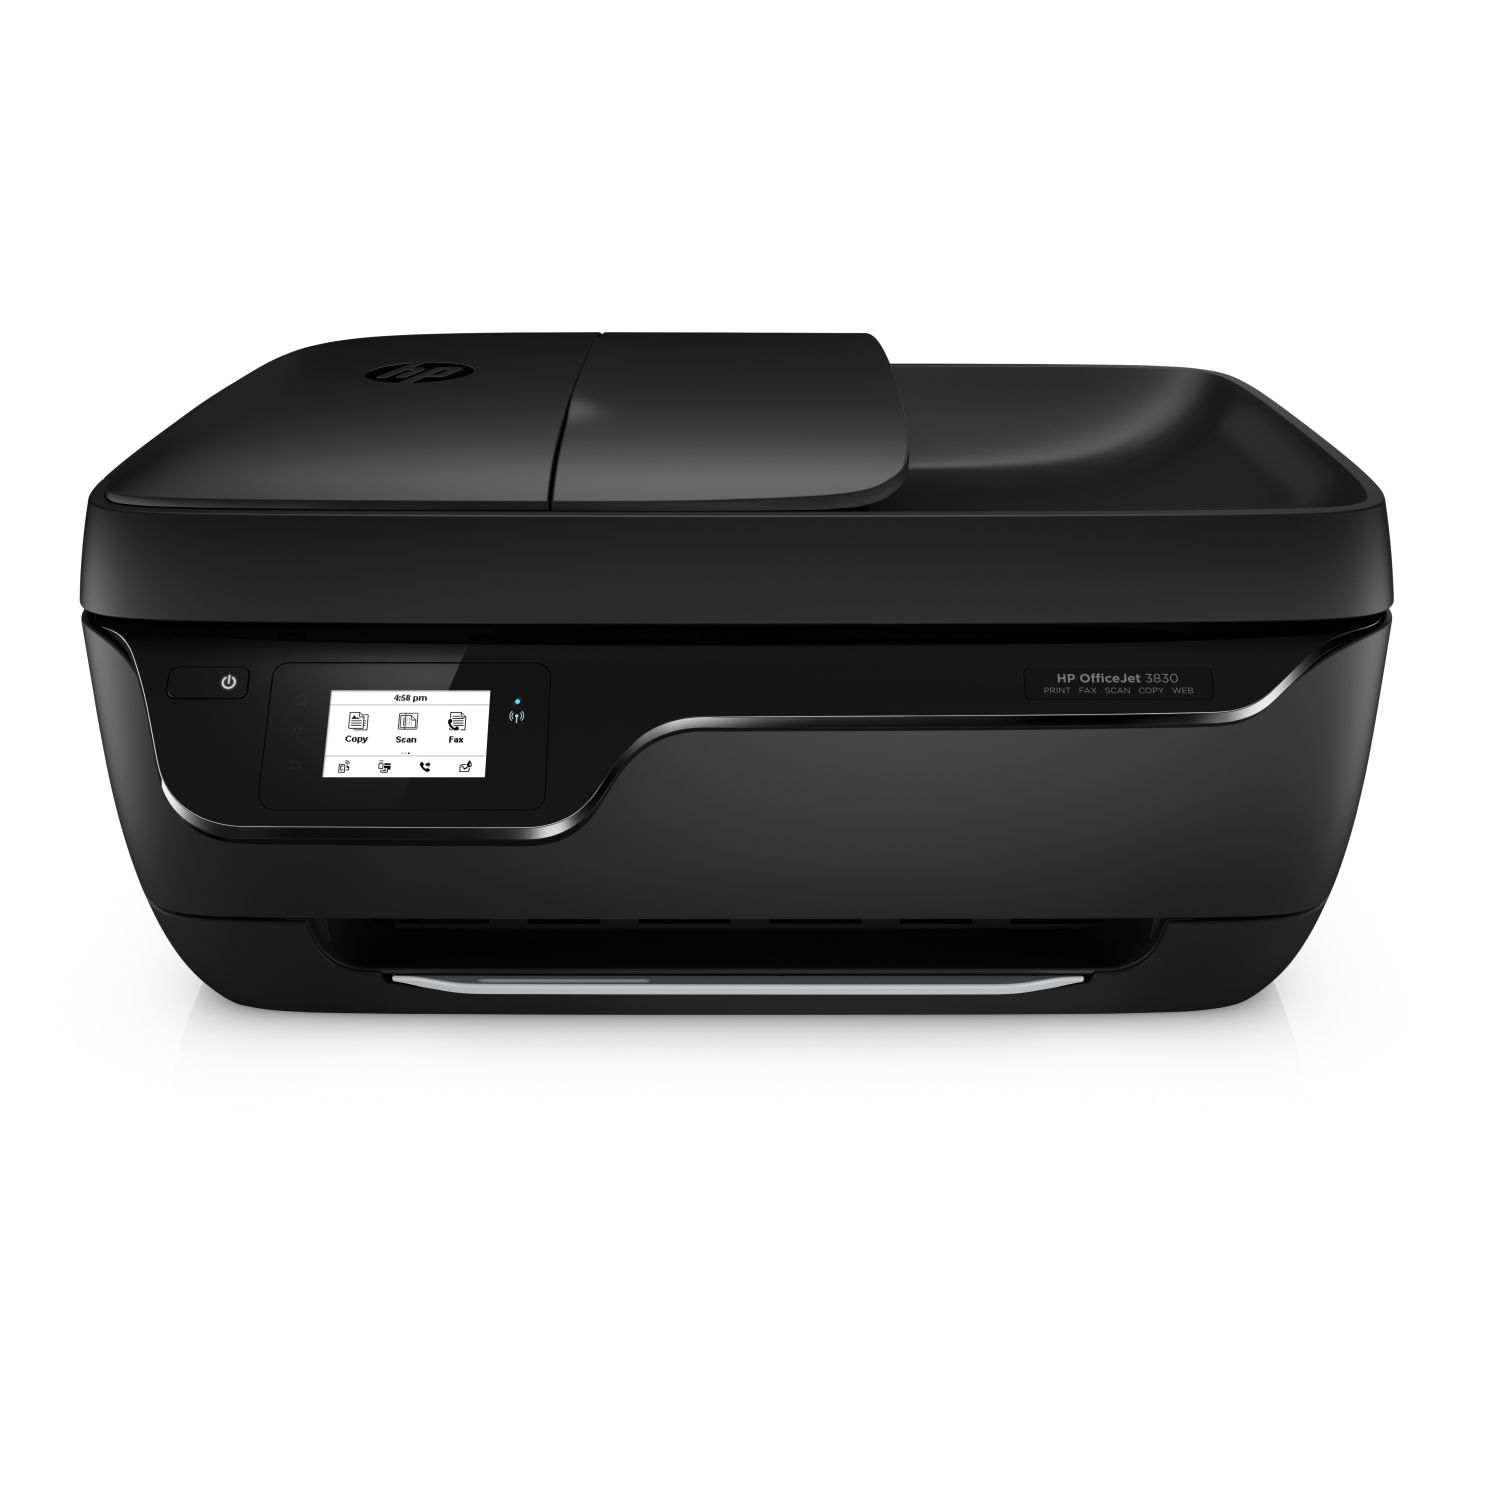 HP Officejet 3834 All-in-One